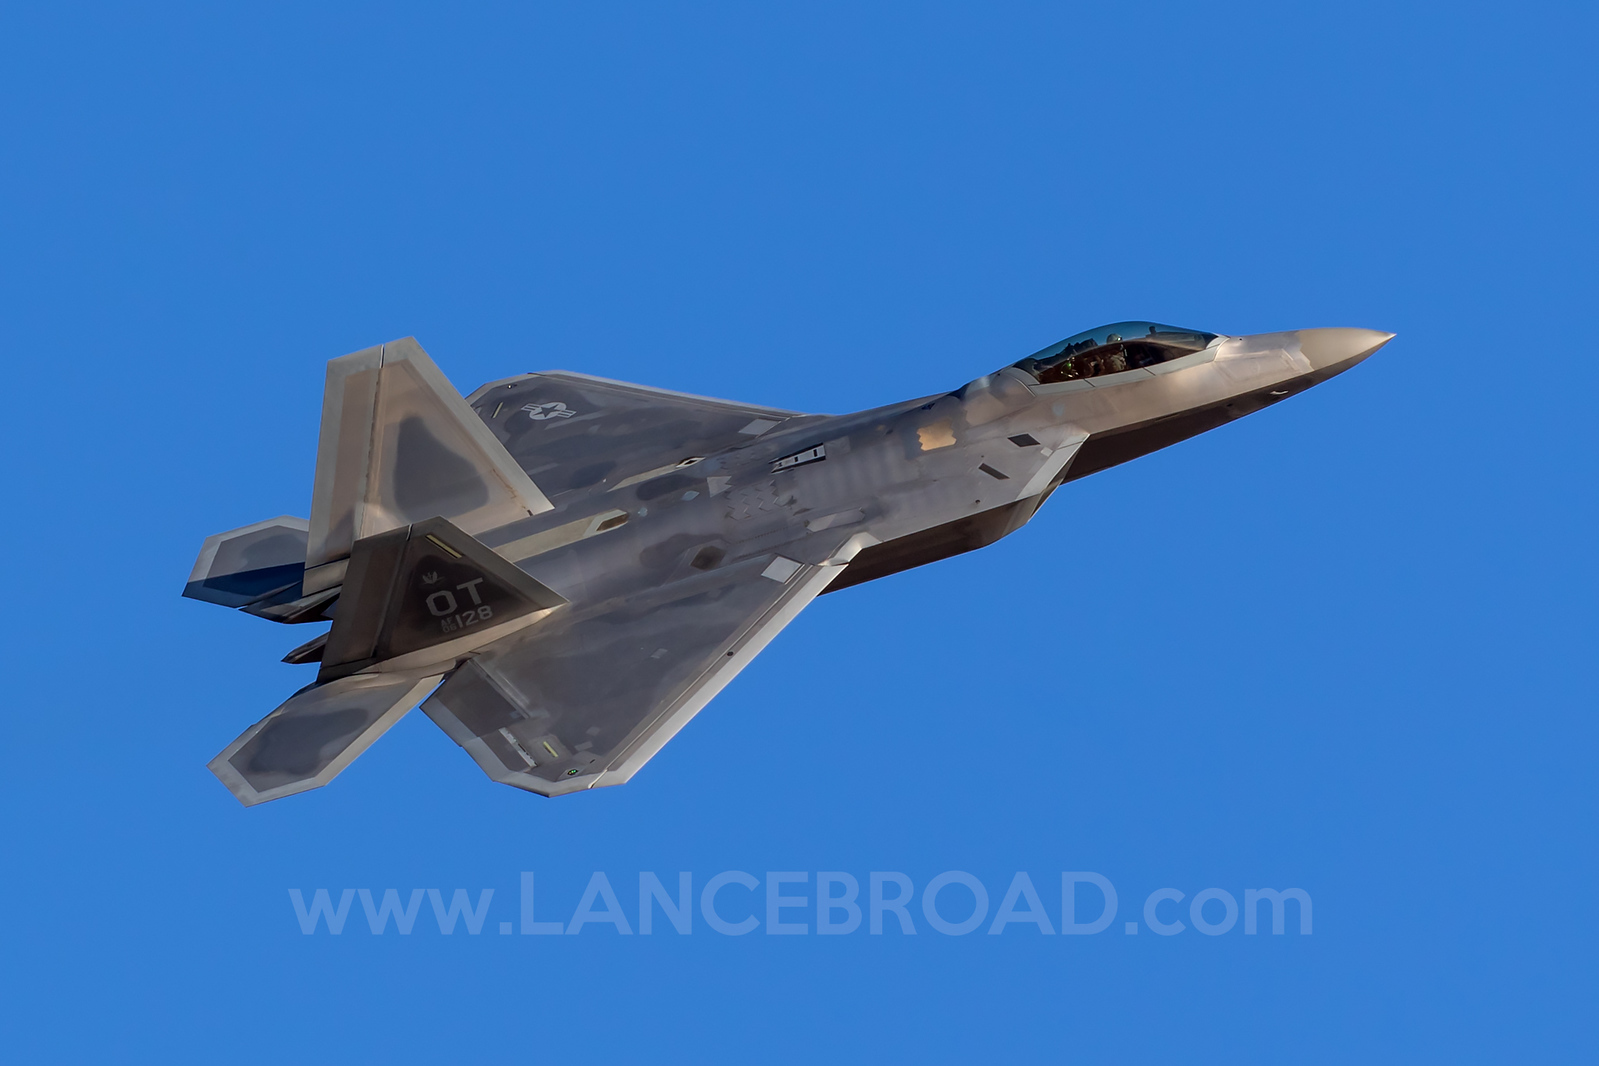 United States Air Force F-22A Raptor - 06-4128 - LSV